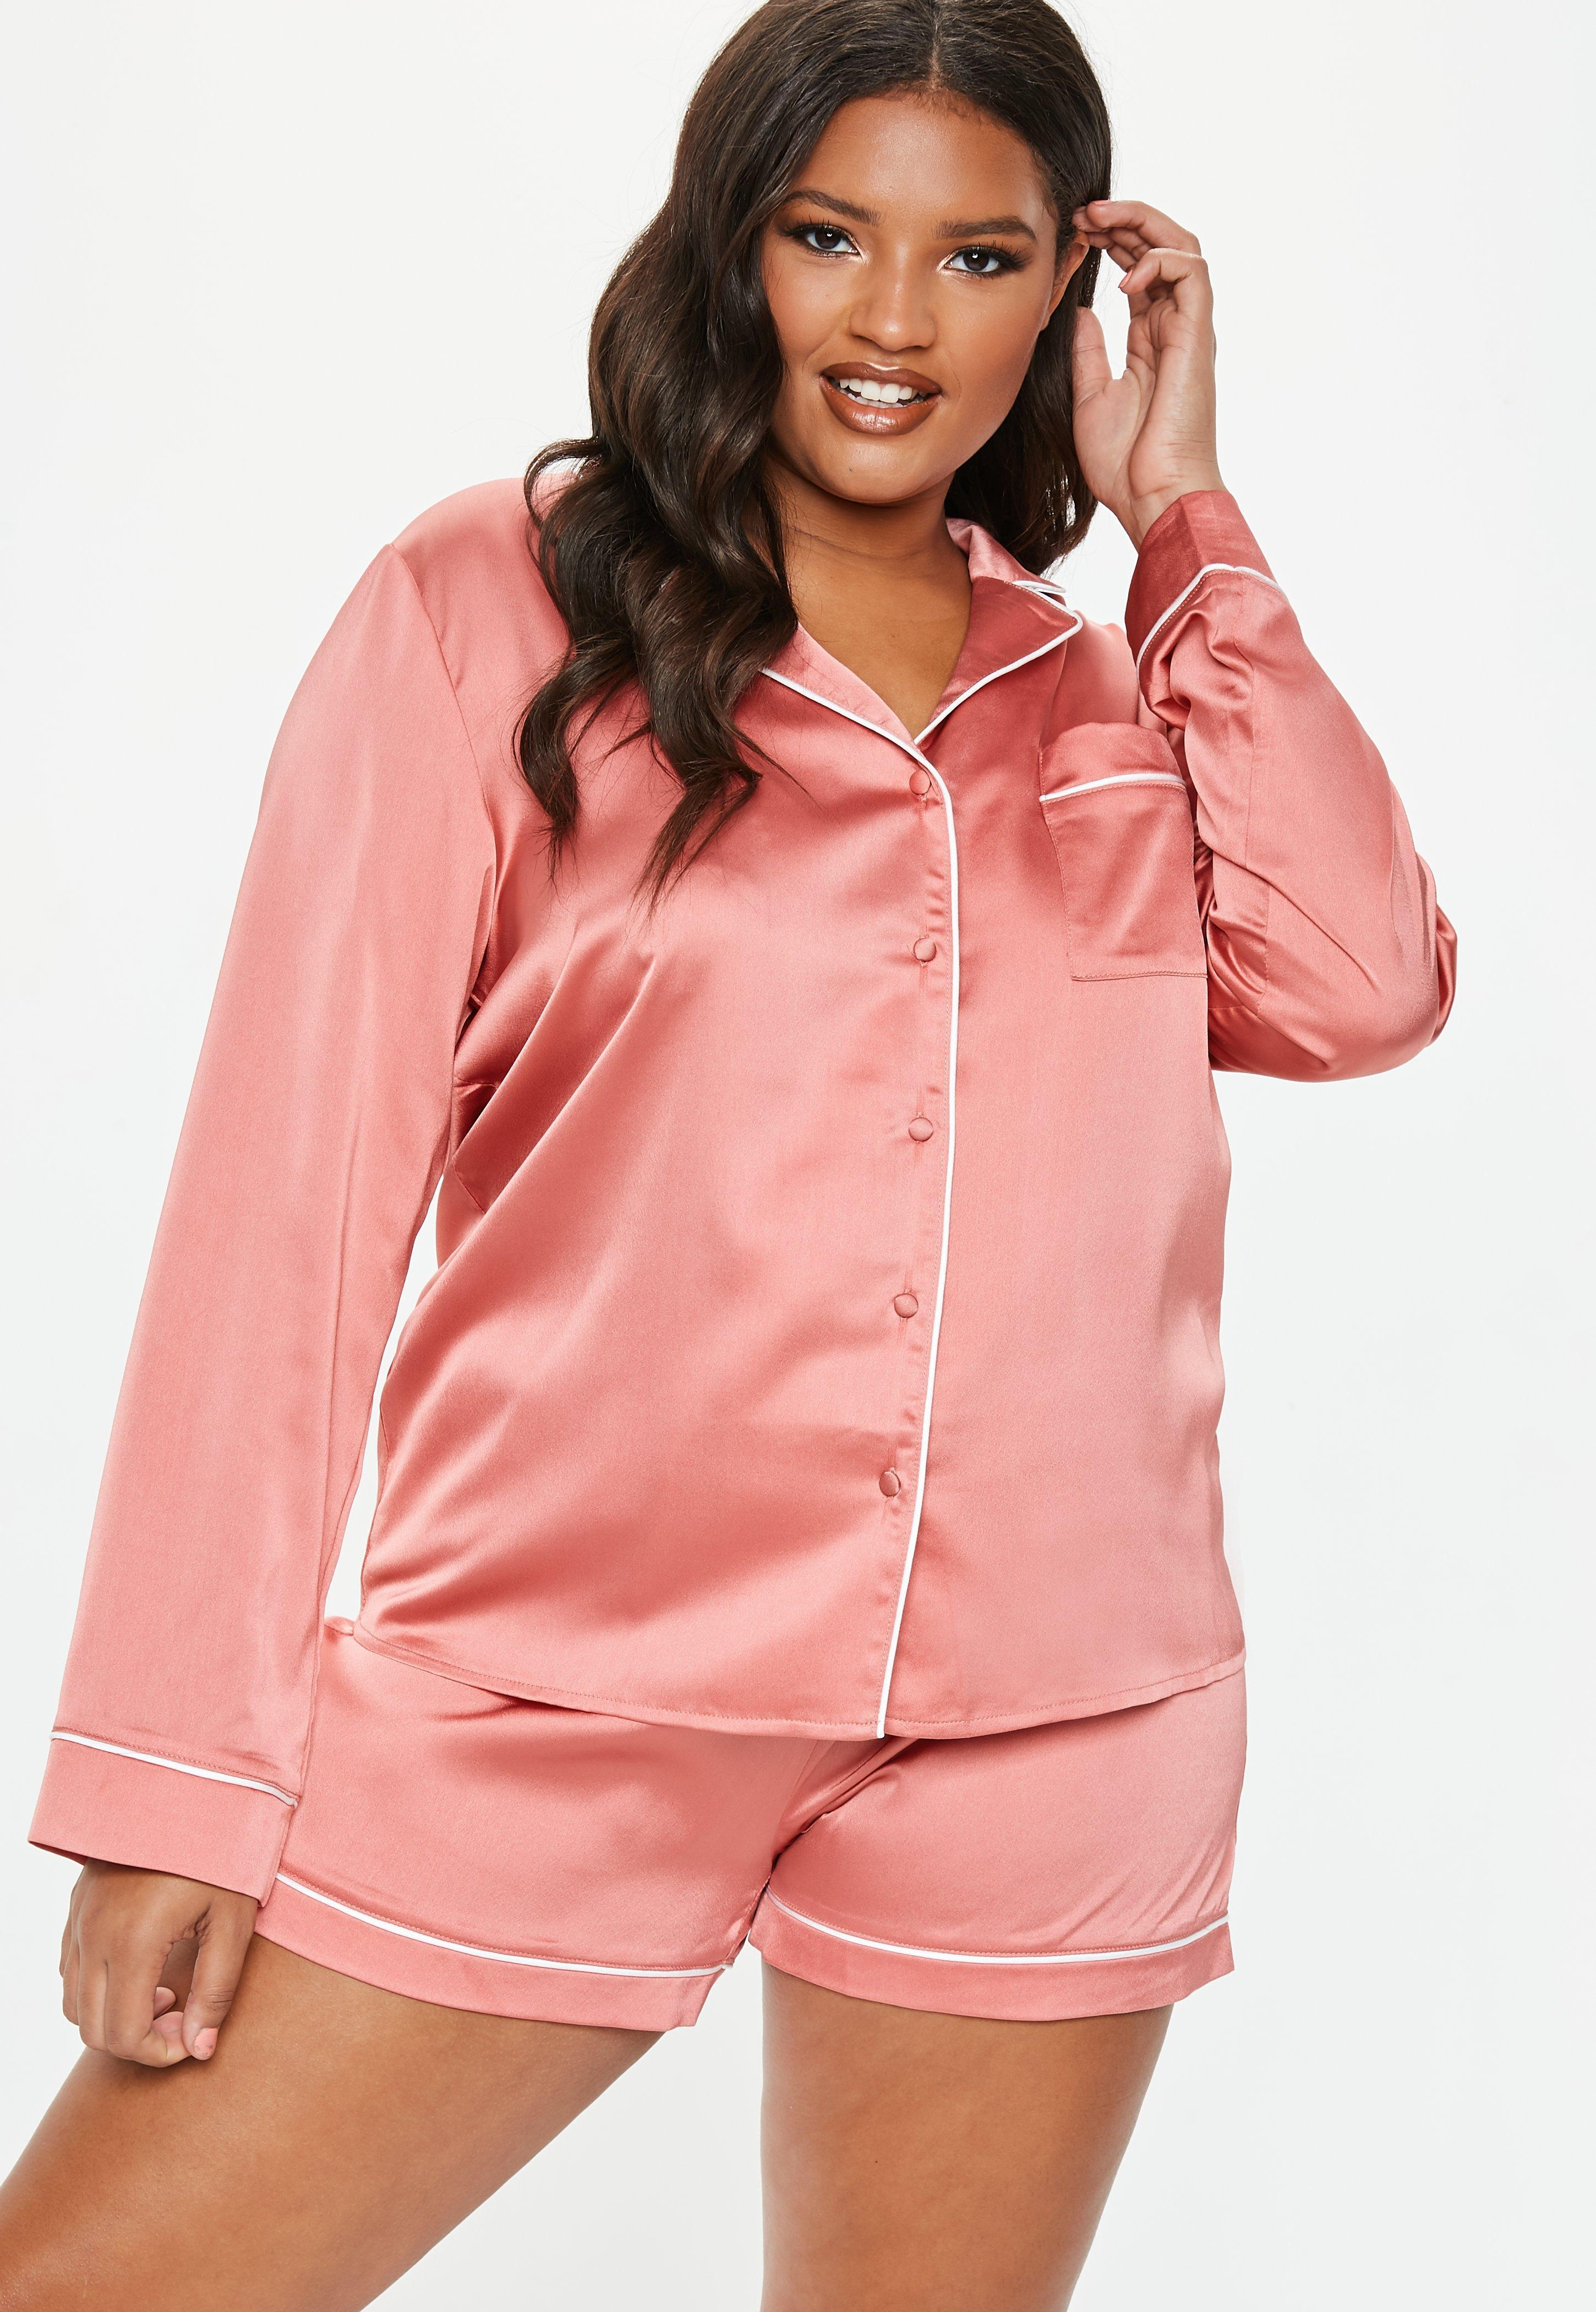 702a0b3be61b Missguided Plus Size Pink Satin Pyjama Set in Pink - Lyst